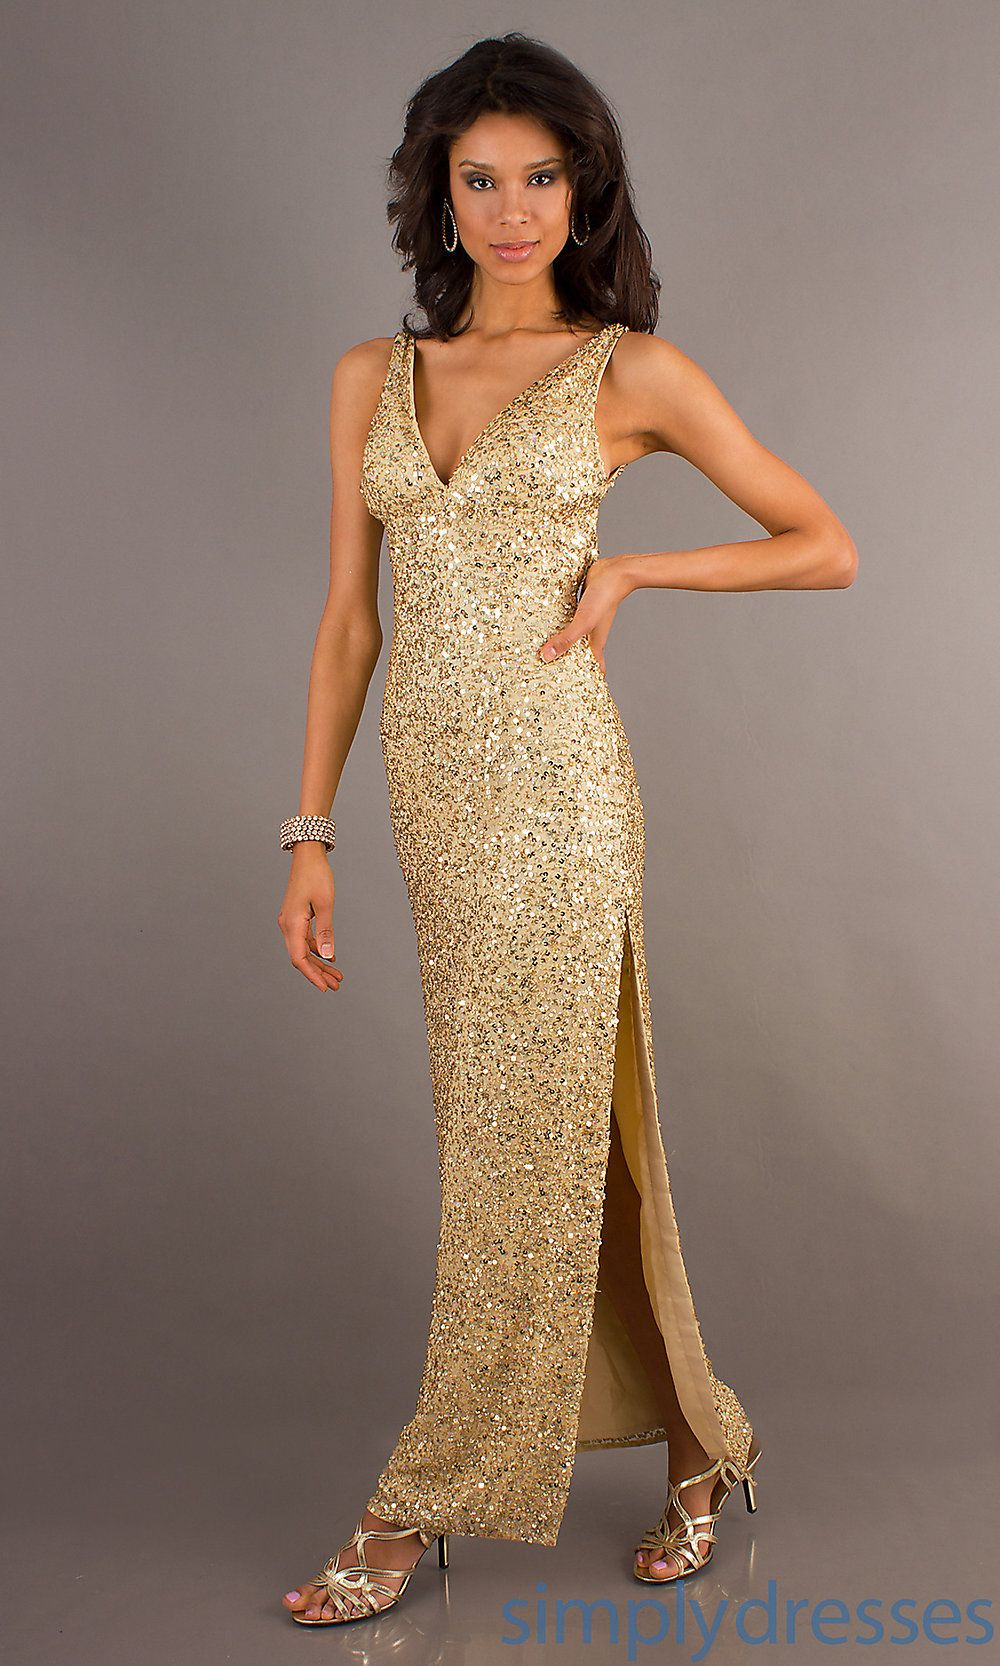 To get empire nice dress to show off your amazing curves wedding